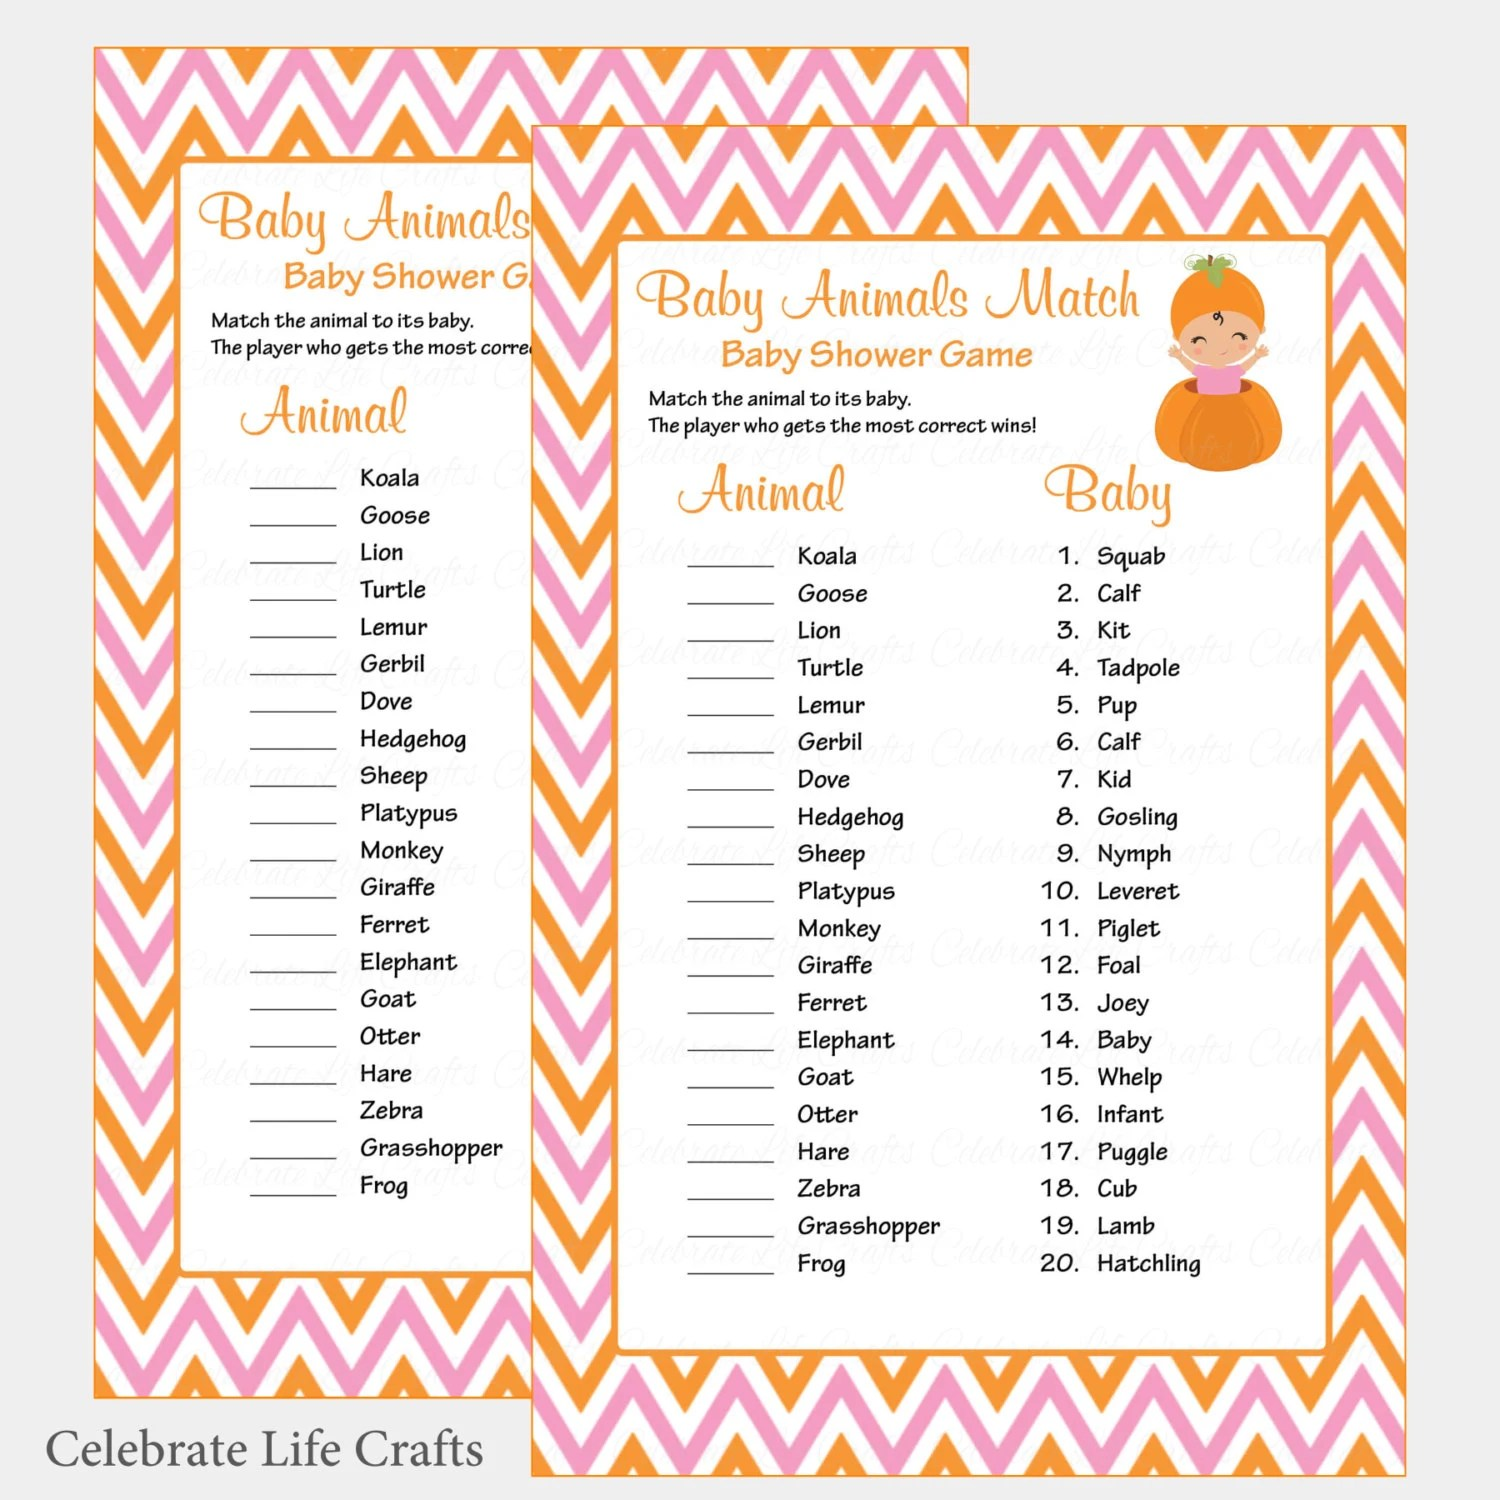 Baby Animals Match Game with Answer Key - Printable Baby Shower Game